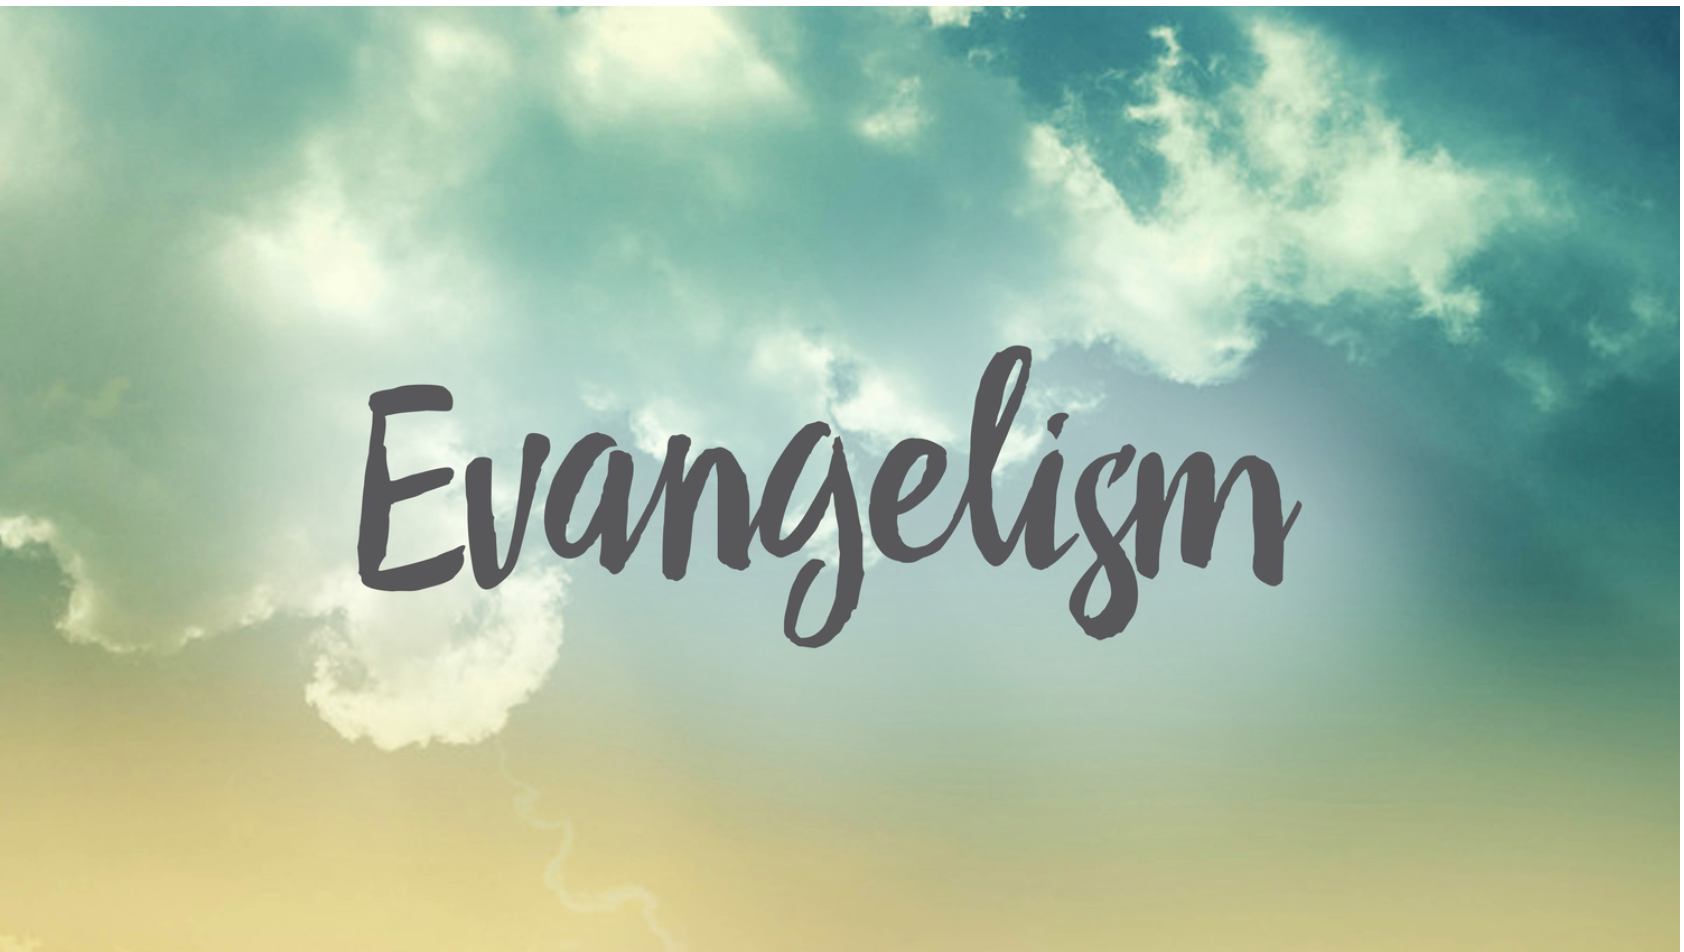 - The Evangelism and Stewardship Committee has two separate tasks. We work on ways that the congregation can give of their time, treasure and talent to support the ministries of St. John. Our second responsibility is to reach out to the community, inviting them to be part of the fellowship of our church. We do this through Facebook, website, and local advertising.